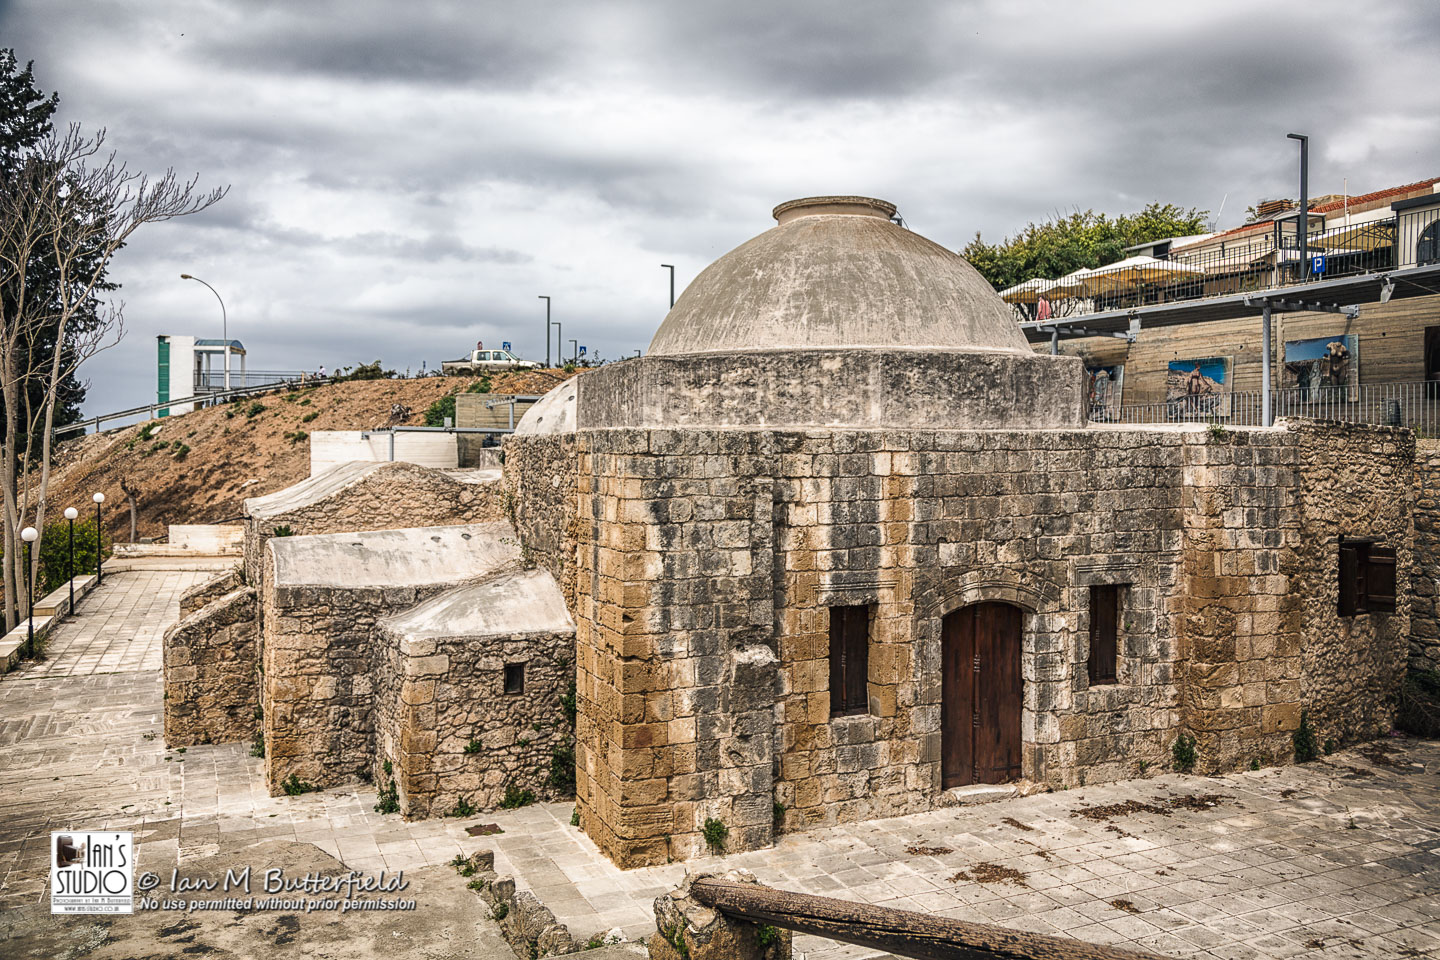 POTD 9 Apr 2019: The Turkish Baths in Paphos Old Town